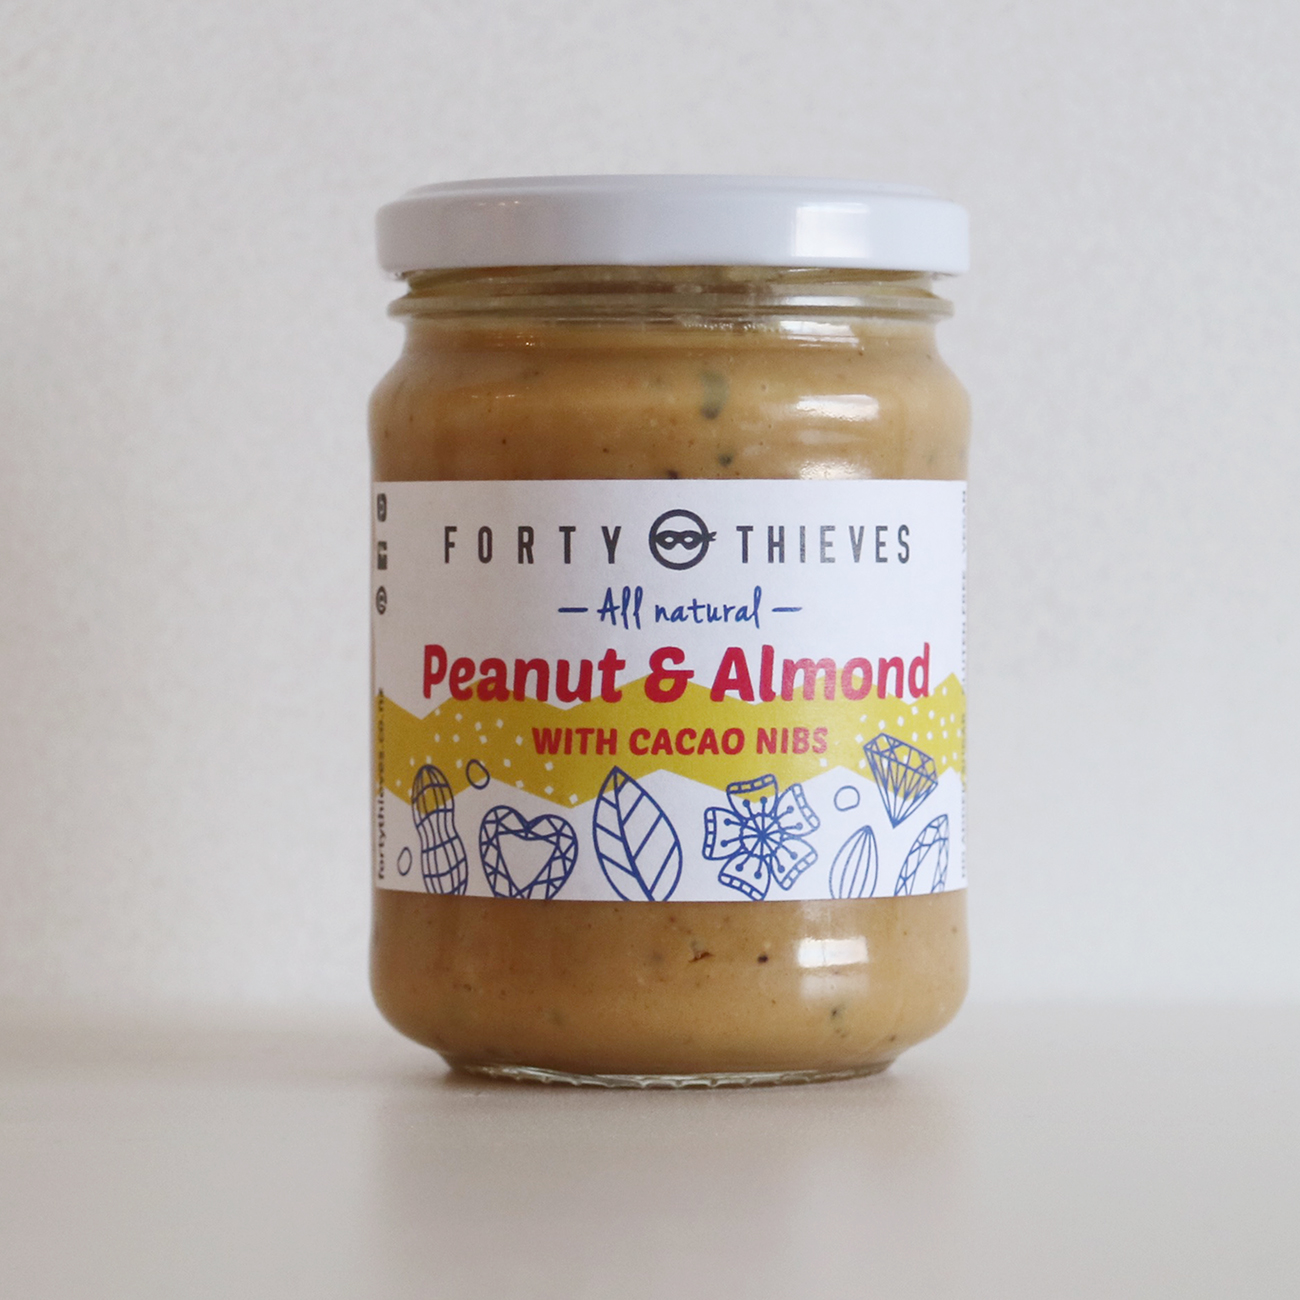 fortythieves_peanut-almond-square_1300